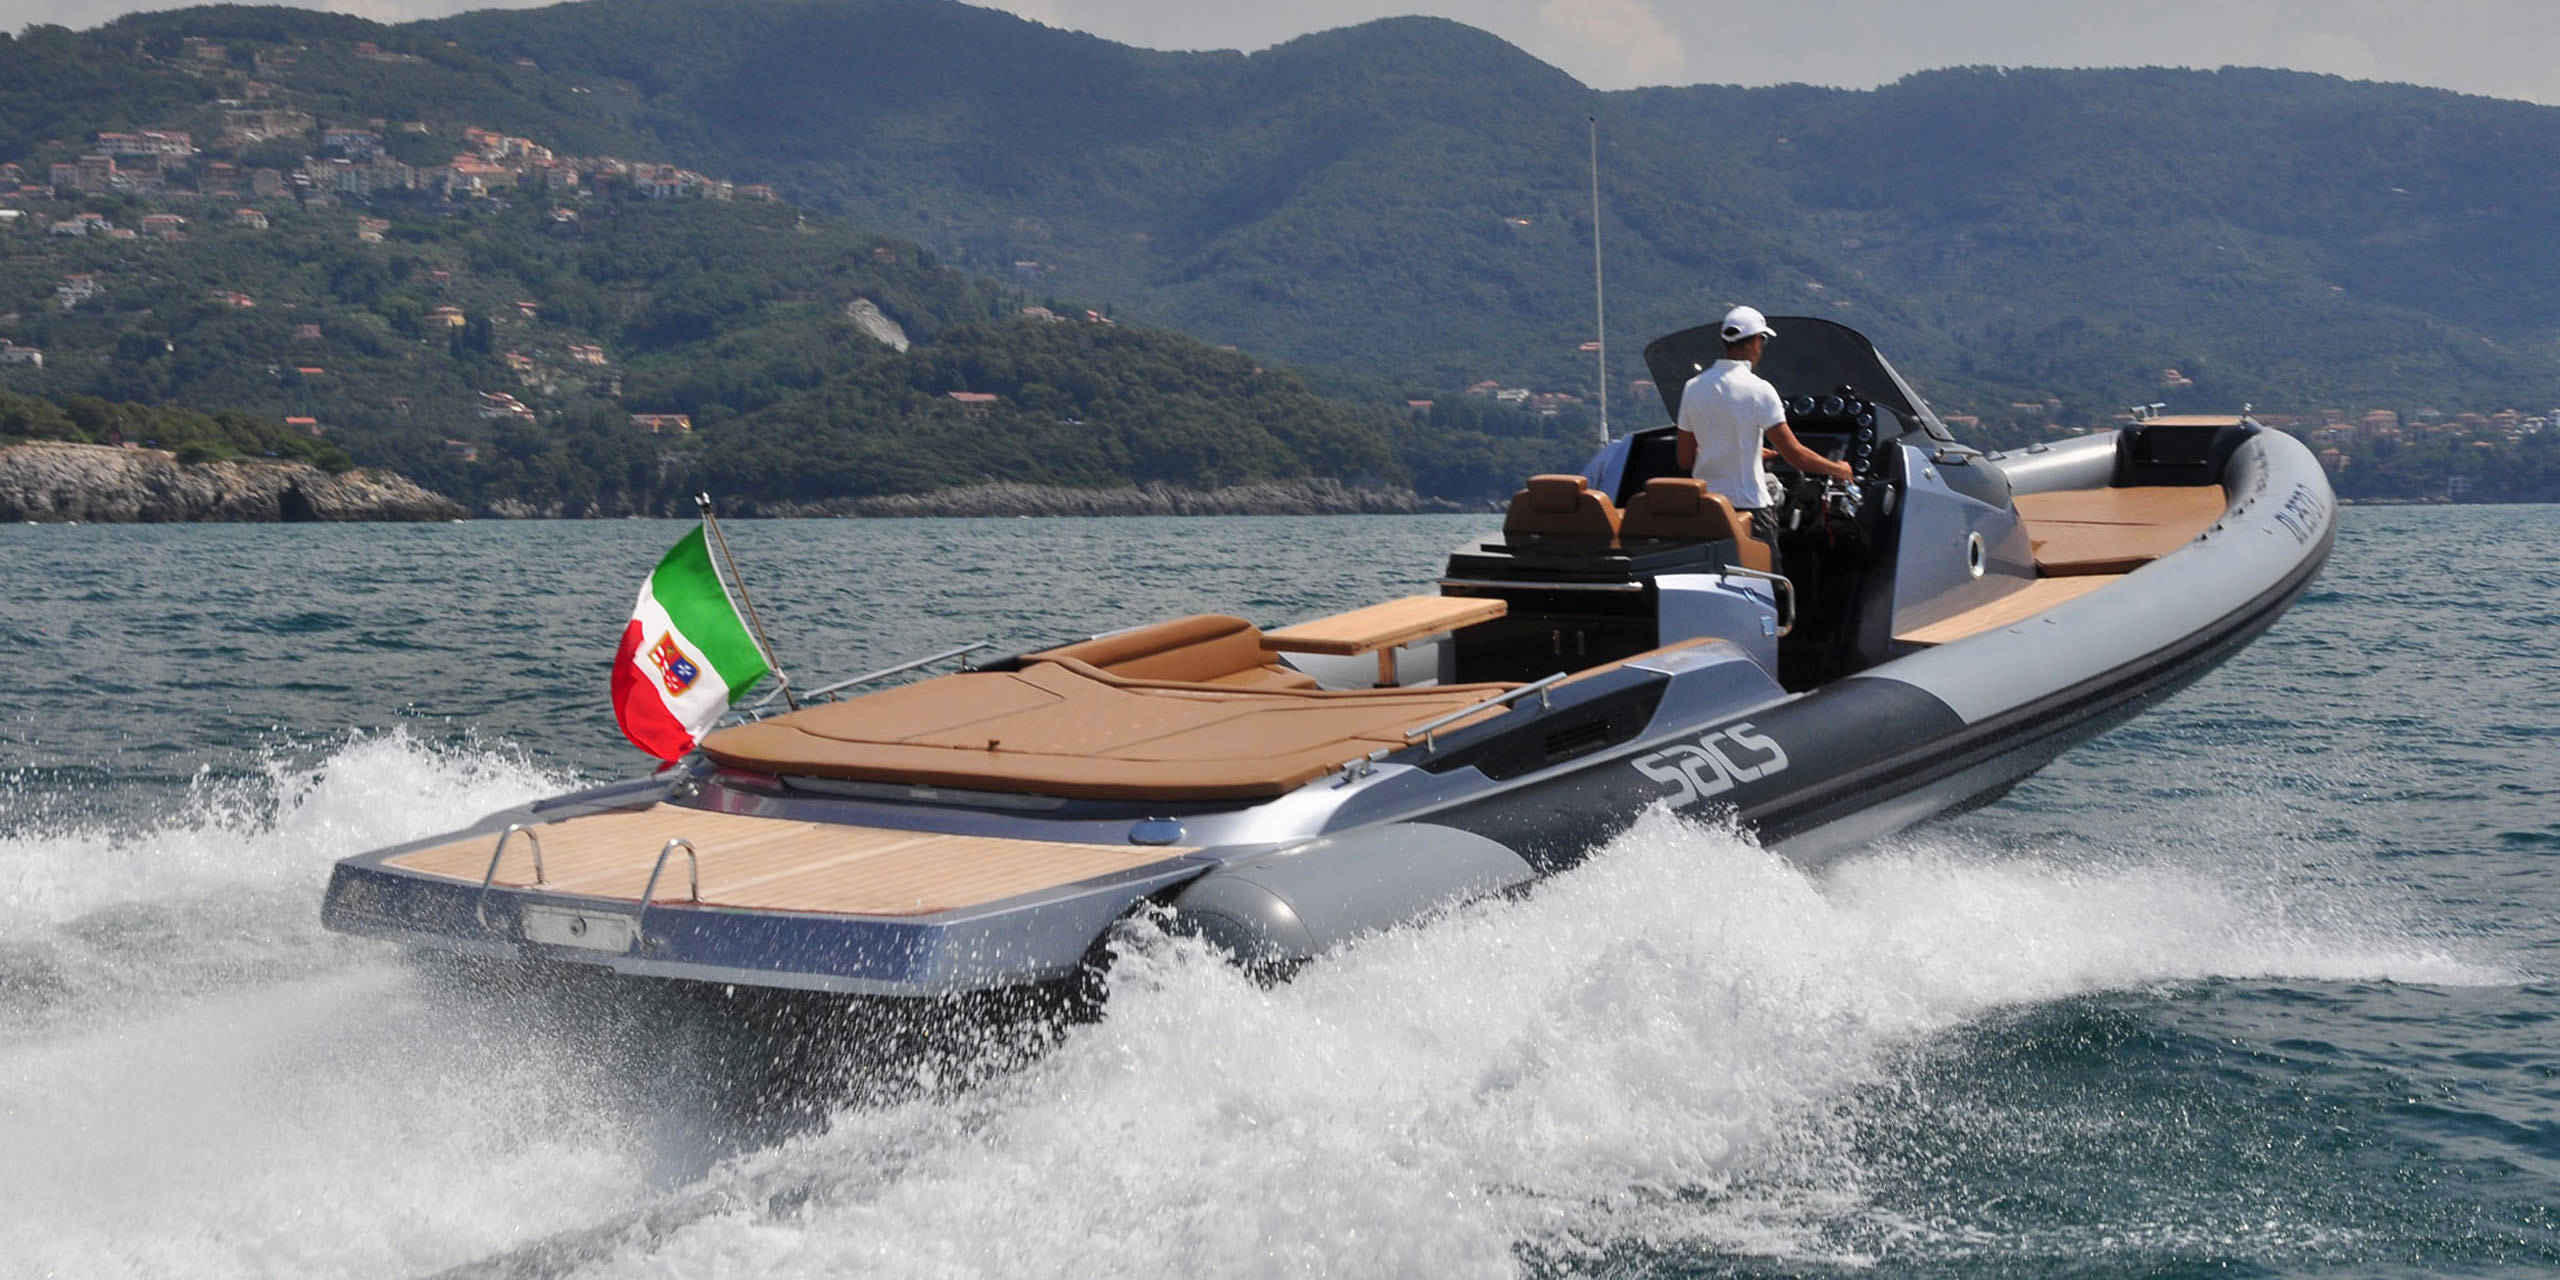 Rental of boats and yachts for events and ceremonies in Calabria. Lo Schiavo Catering e Banqueting.